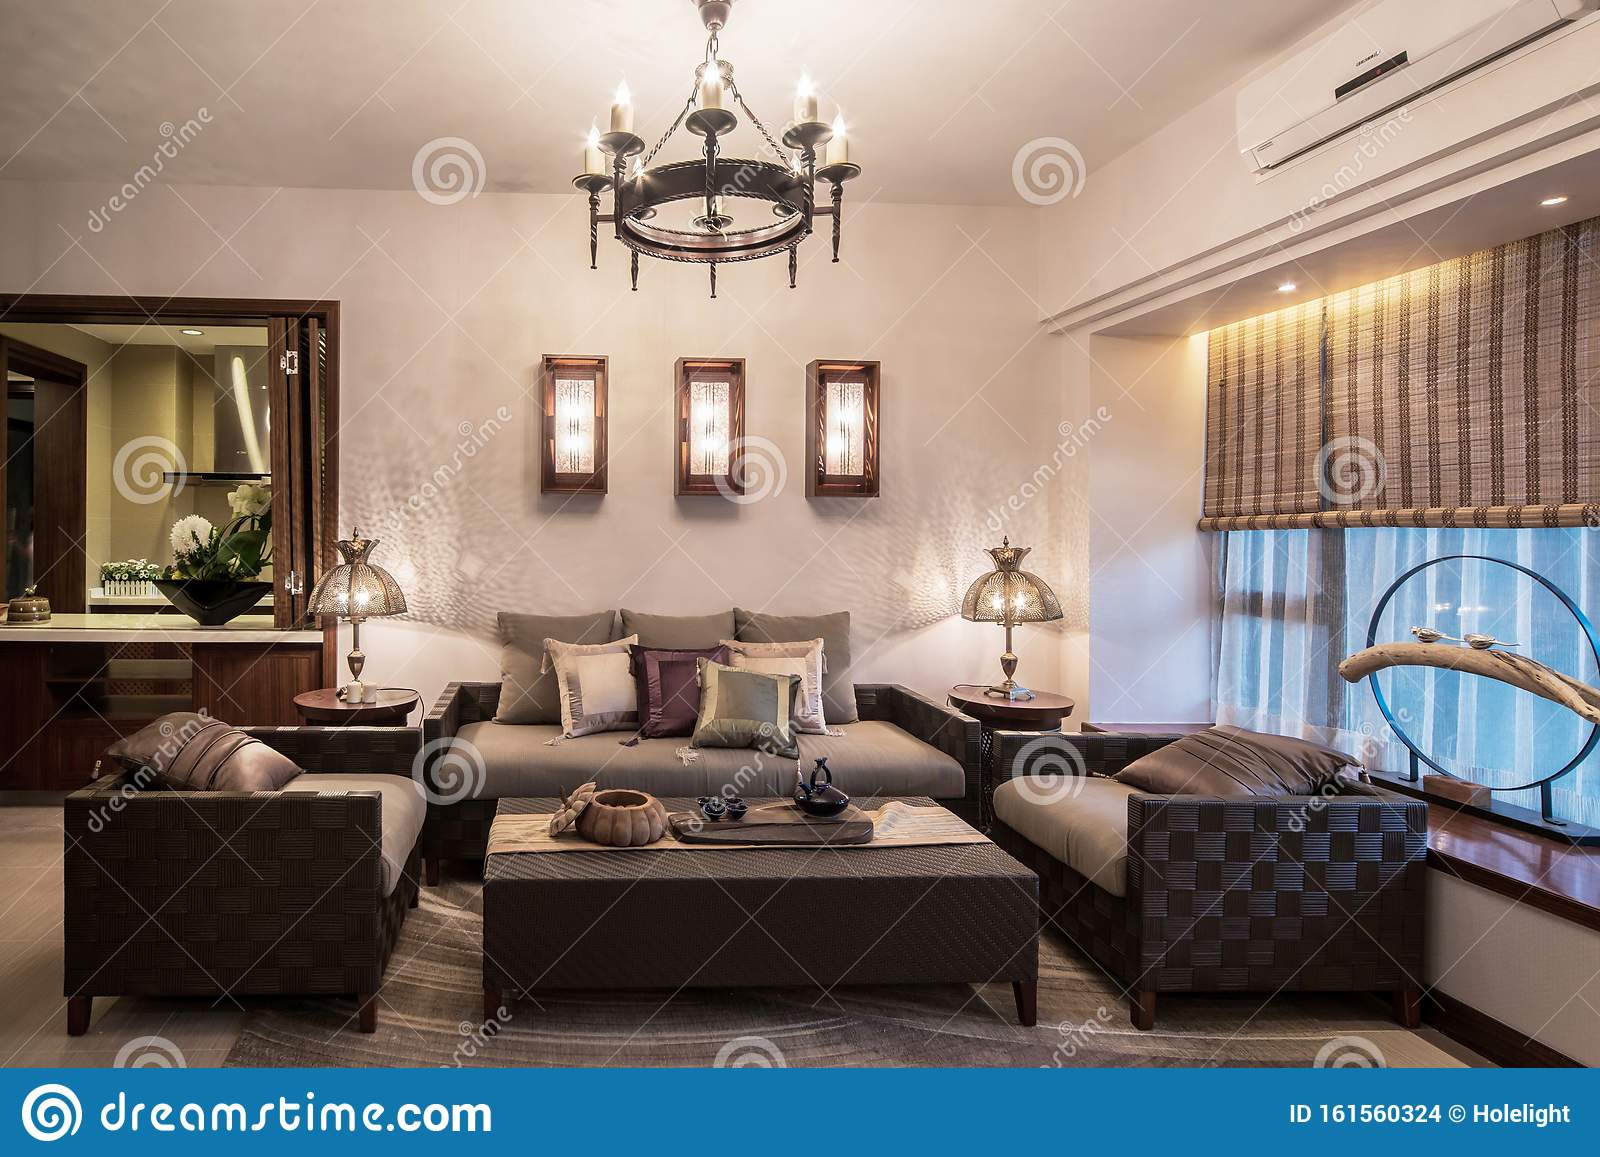 Elegant And Simple Oriental Thai Style Earth Tones Home Living Room Interior Design With Special Lamp And Vine Furniture Stock Photo Image Of Interior Feature 161560324